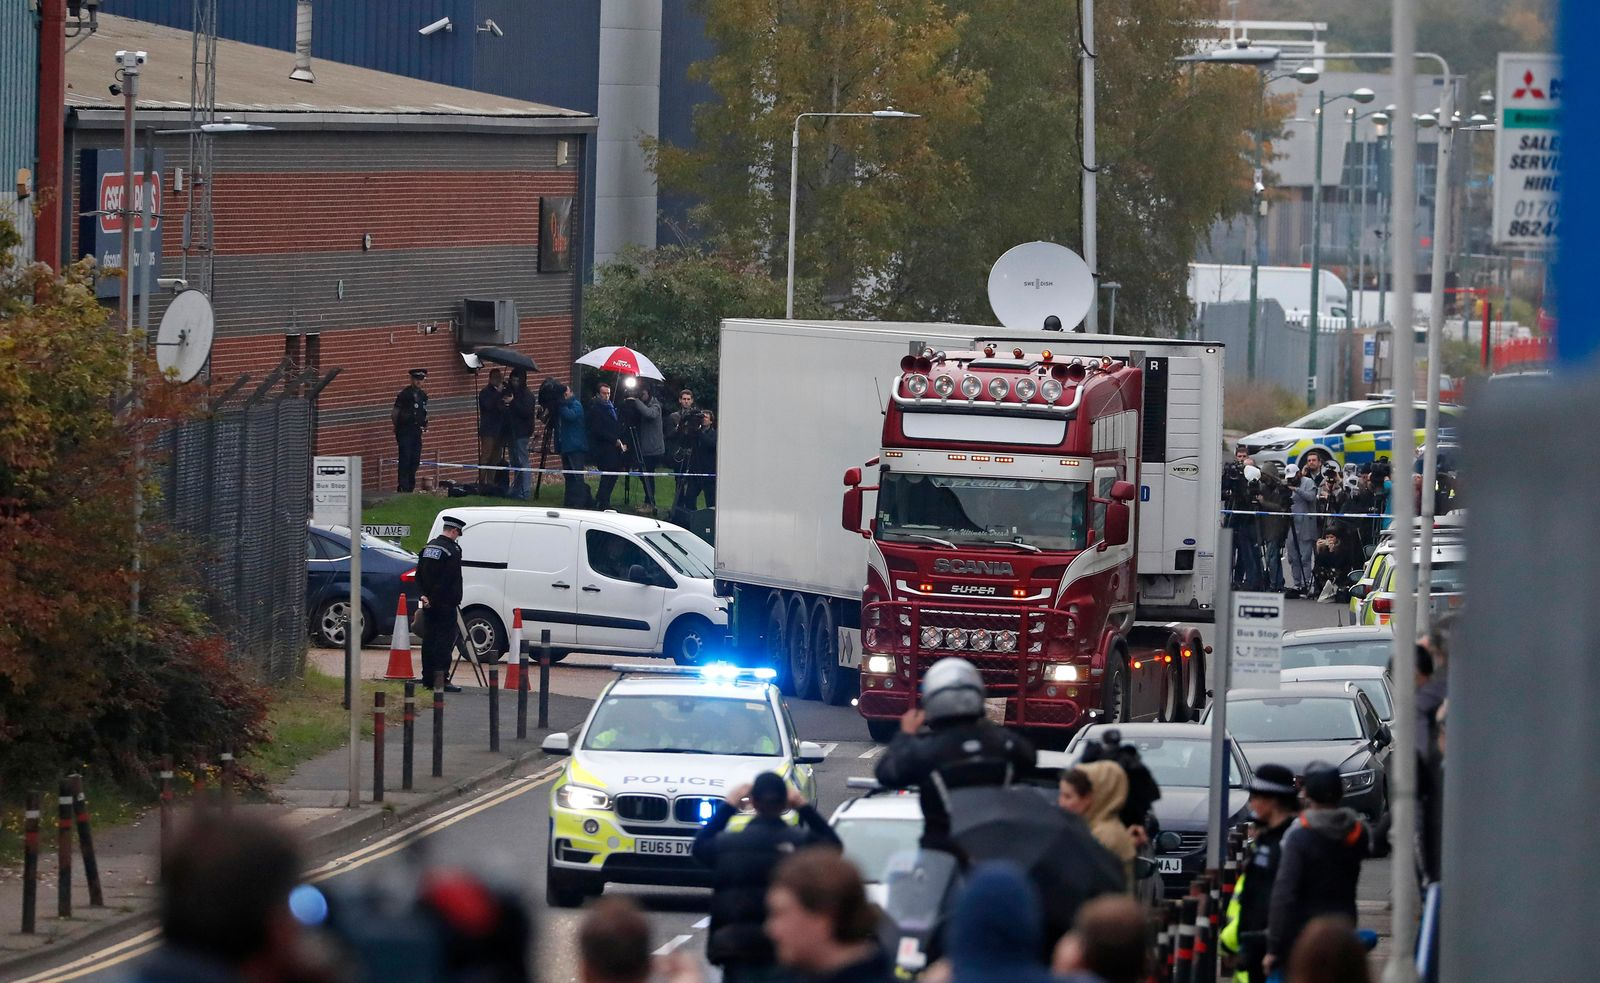 Police escort the truck, that was found to contain a large number of dead bodies, as they move it from an industrial estate in Thurrock, south England, Wednesday Oct. 23, 2019.{ } (AP Photo/Alastair Grant)